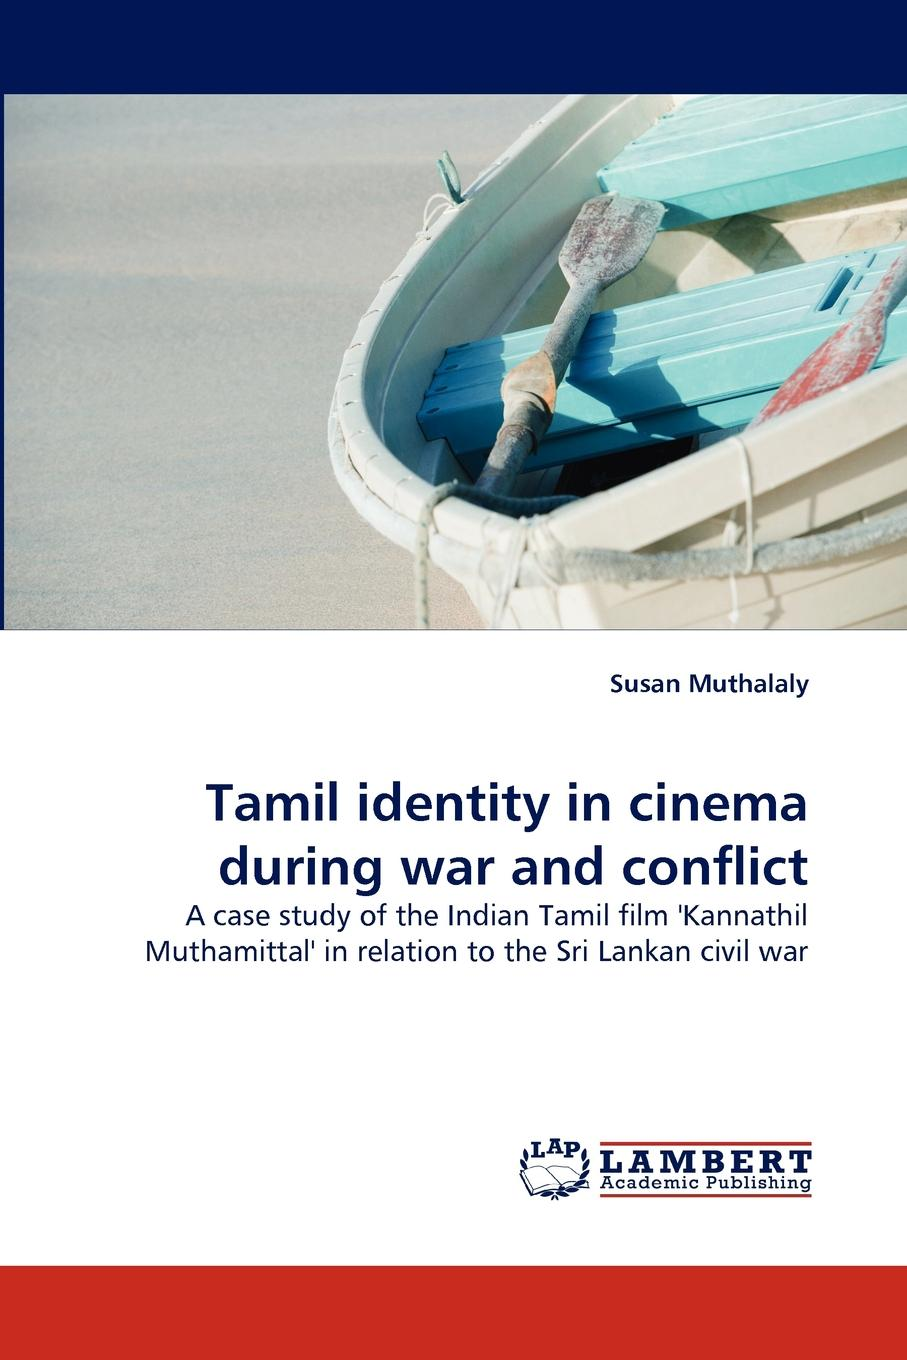 Susan Muthalaly Tamil Identity in Cinema During War and Conflict dilan prasad harsha senanayake the influence of the civil war on mahinda rajapaksa s foreign policy in sri lanka during 2005 2015